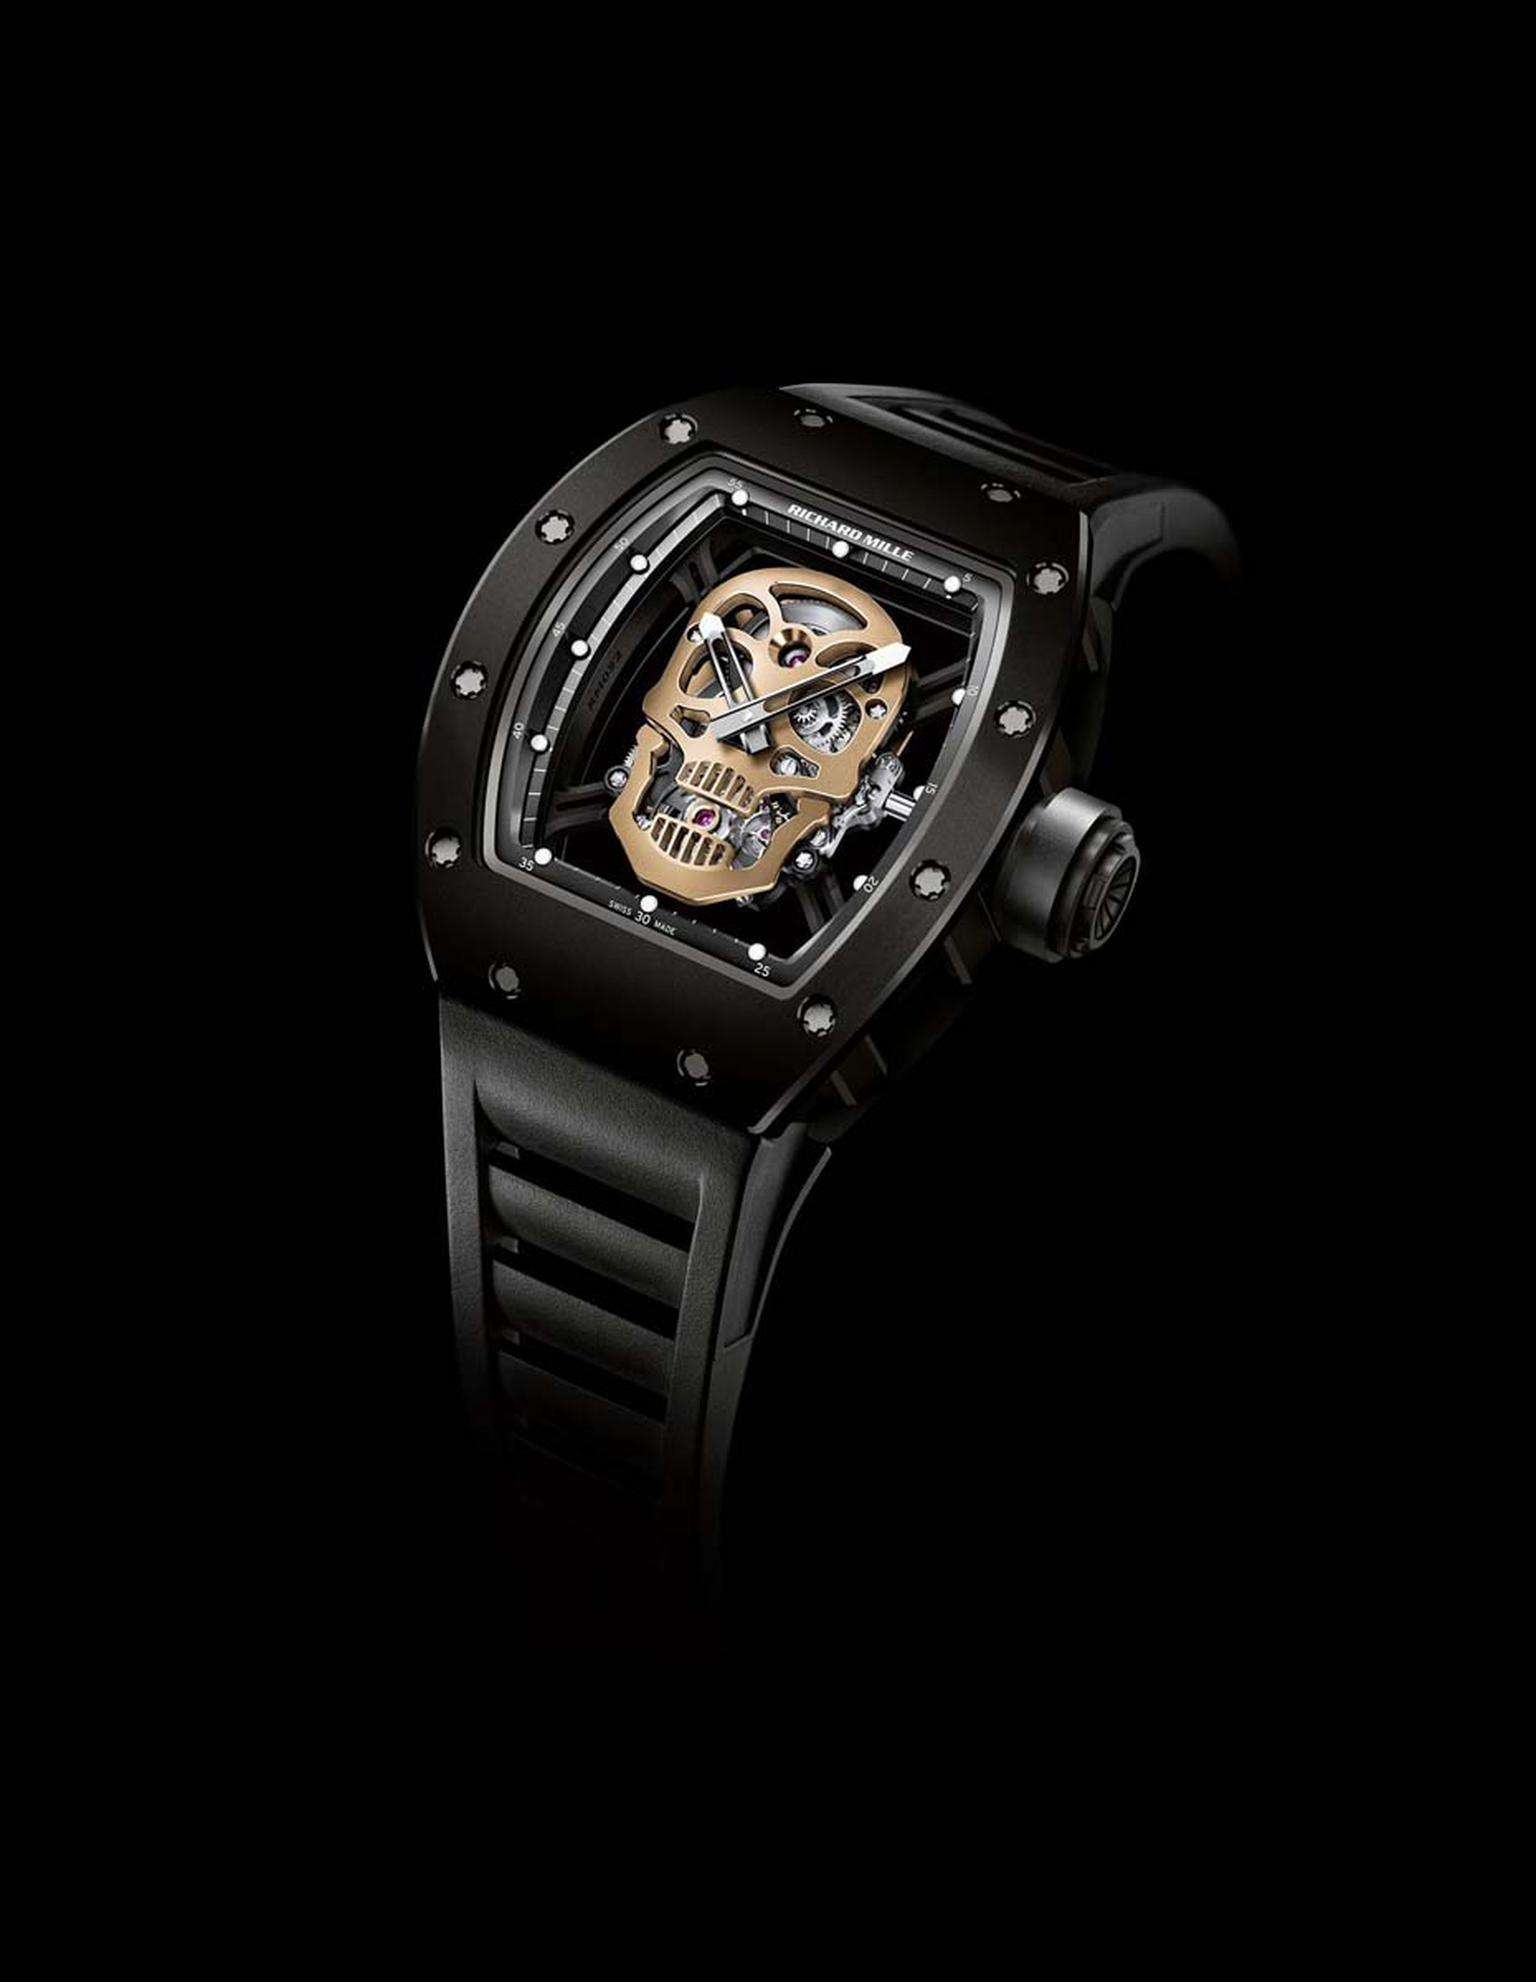 Richard Mille's RM 52-01 Skull watch has been sculpted in red gold and housed in a case made from nano-ceramic. This high-tech material is highly resistant to scratches and resilient to blows to protect the manual winding tourbillon movement nestled insid